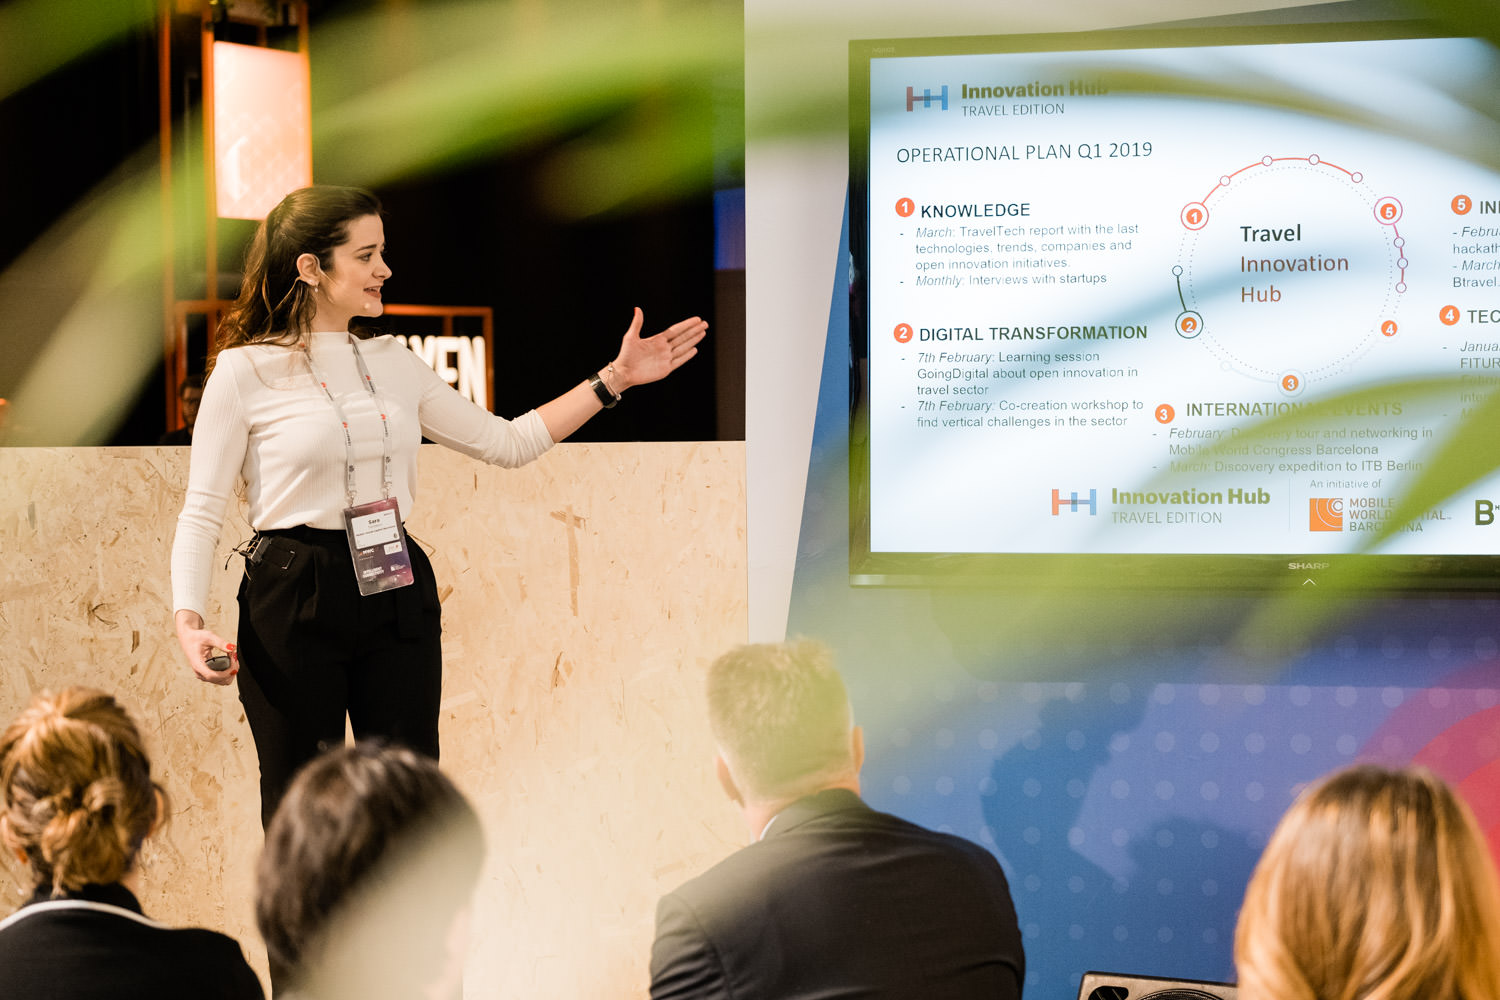 A photograph of a young professional lady giving a presentation at the Mobile World Capital stage, during the 4YFN conference in Barcelona